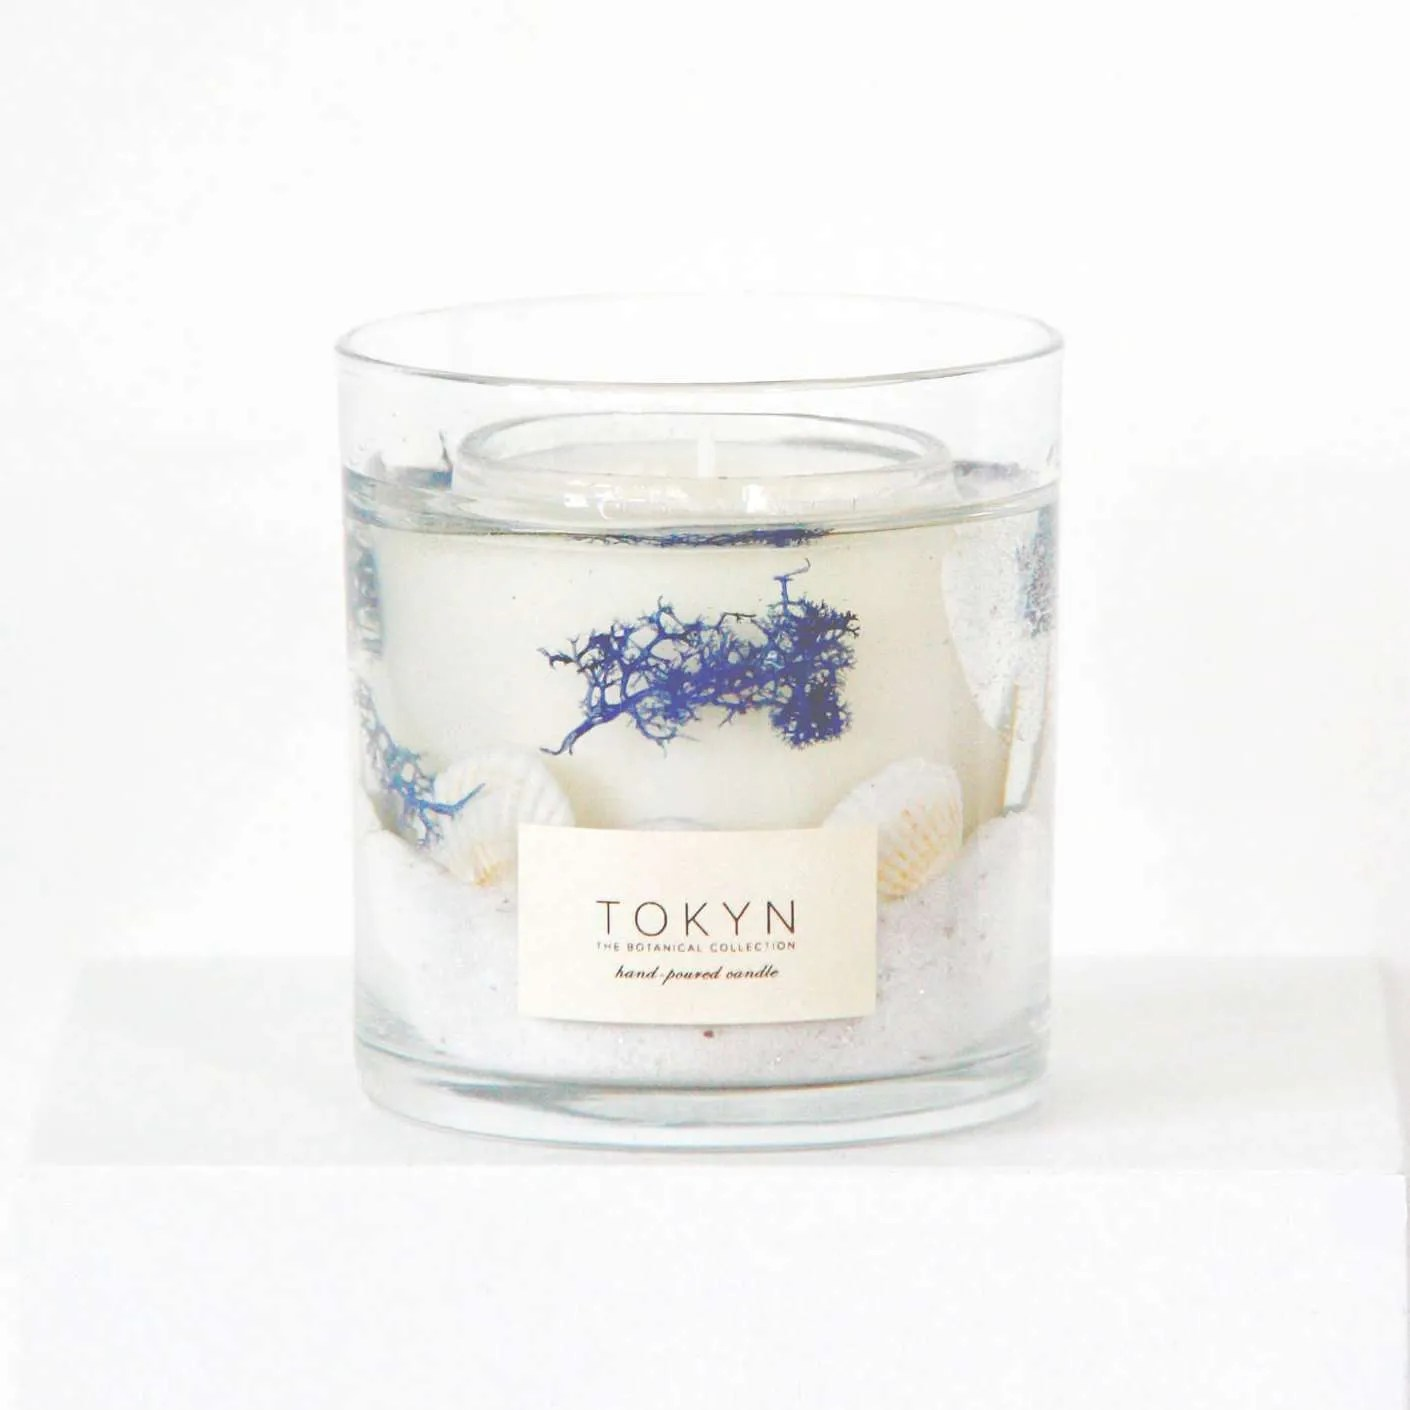 Scented candle on etsy